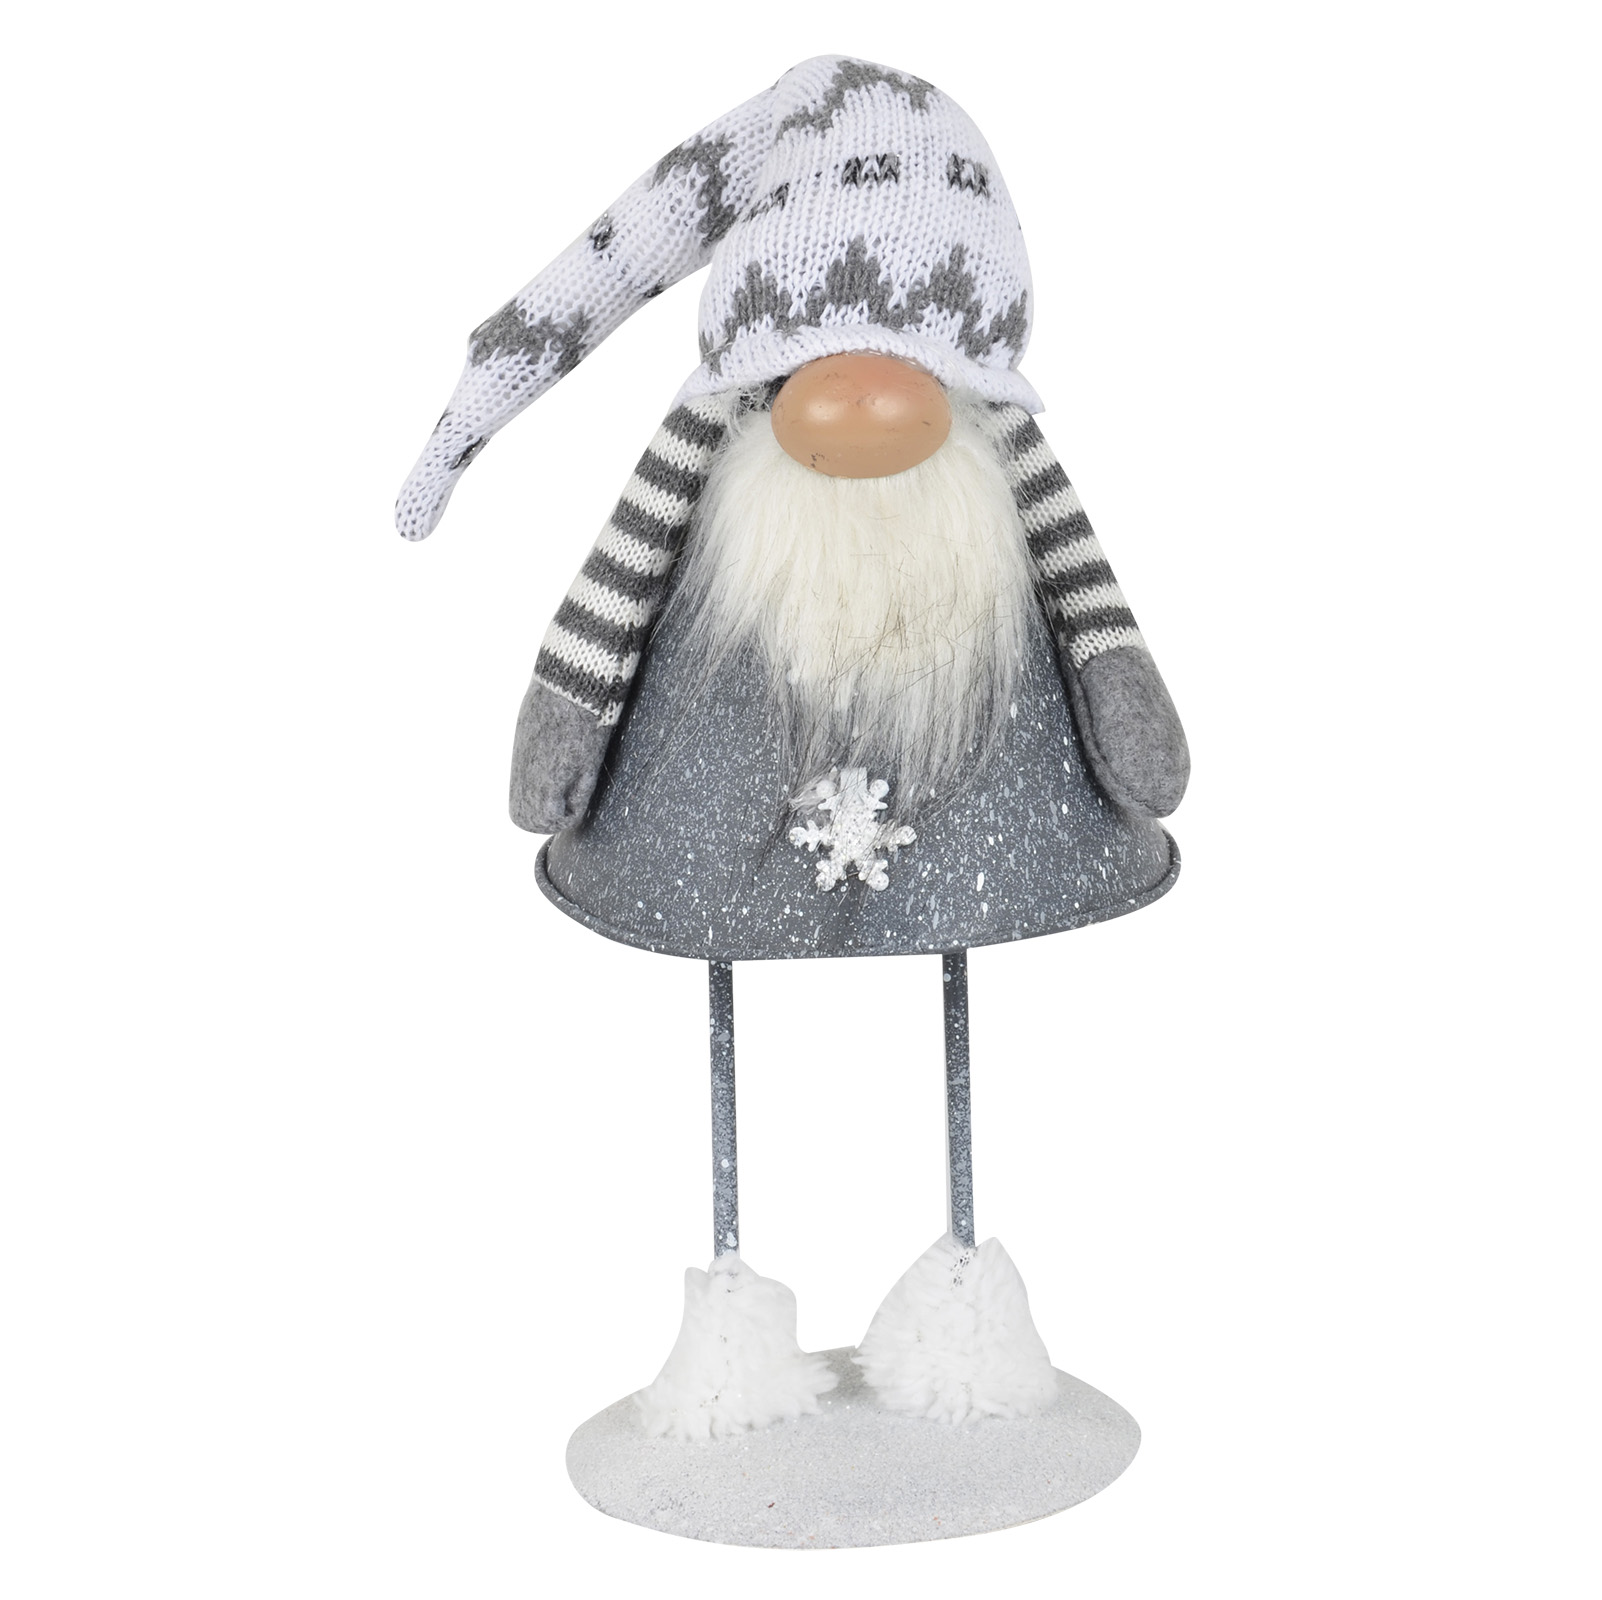 Wobble dance santa christmas decoration fun novelty xmas